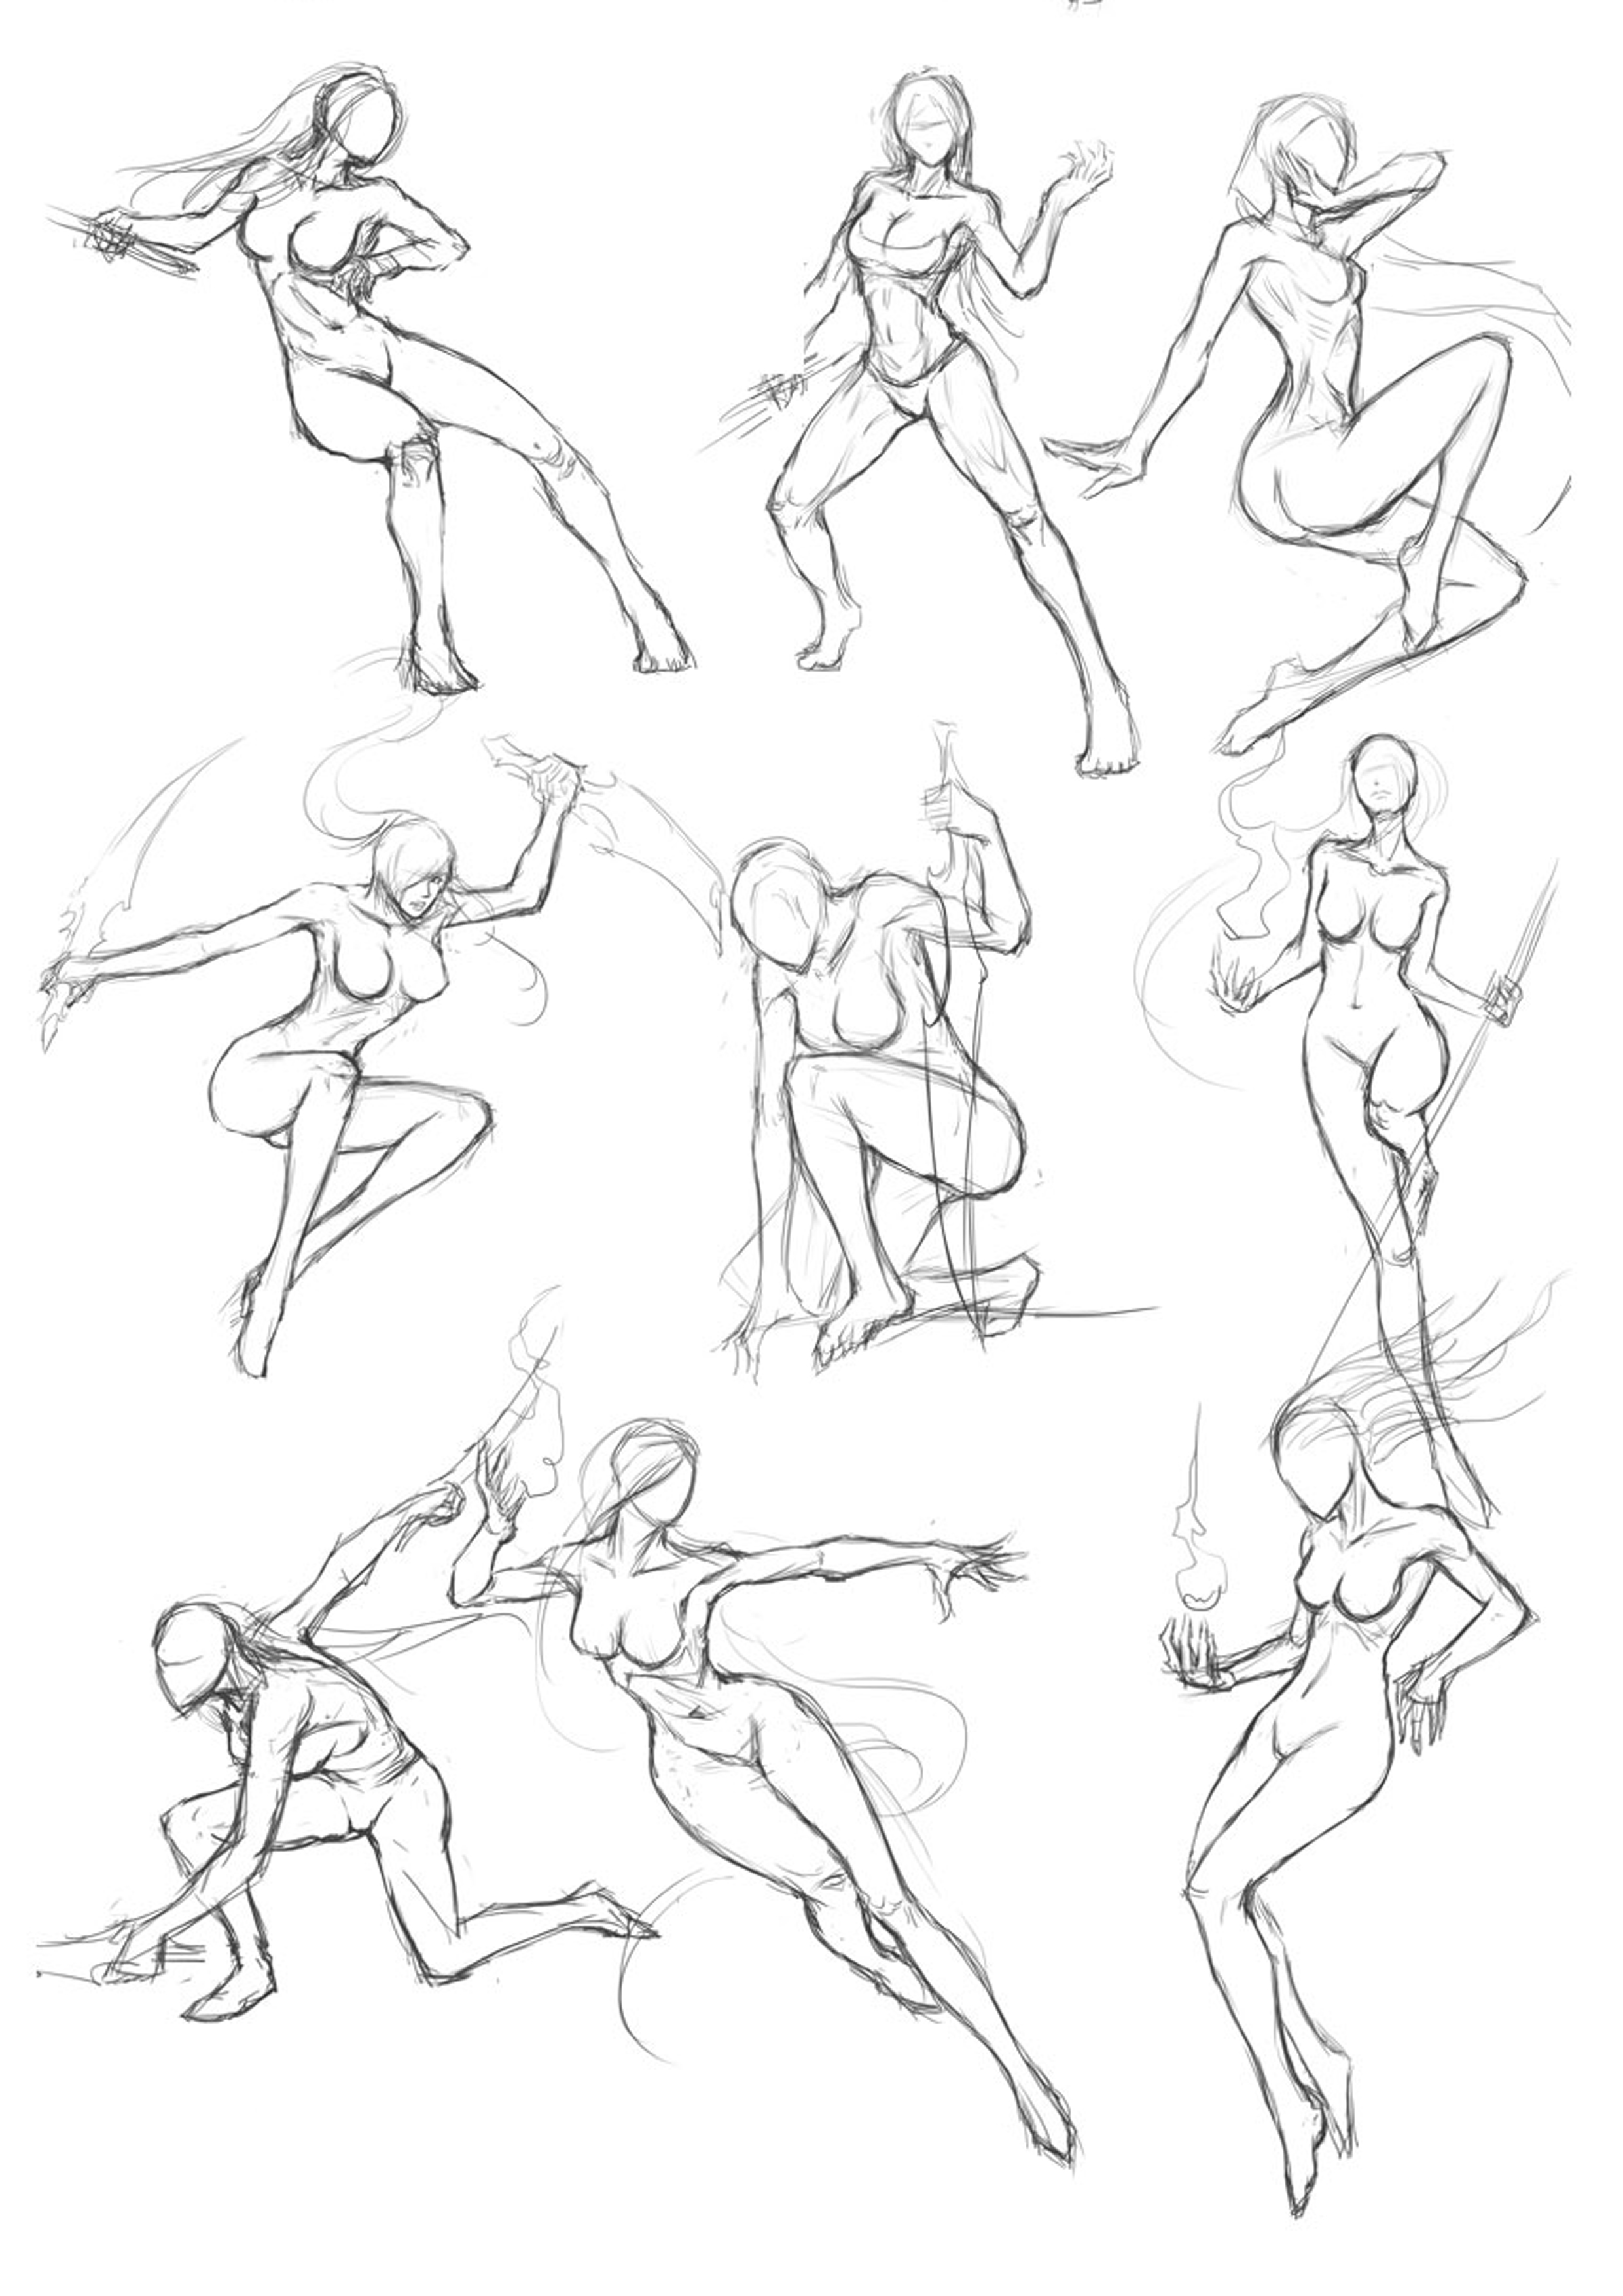 2480x3508 Martial Arts Posture Ref Martial, Drawings